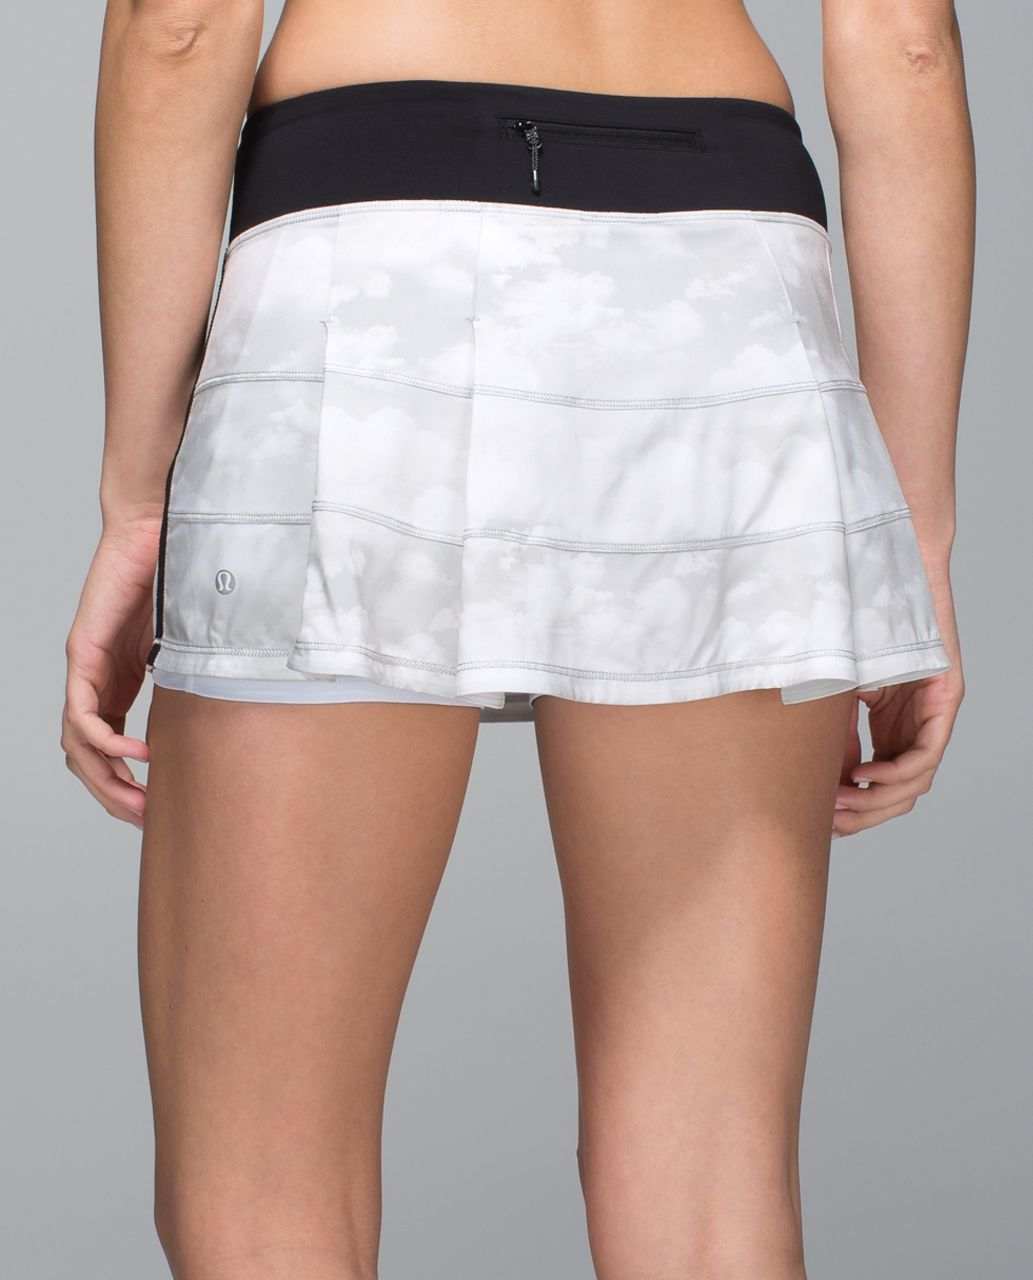 Lululemon Pace Rival Skirt II *4-way Stretch (Regular) - Nimbus Puff White Silver Spoon / Black